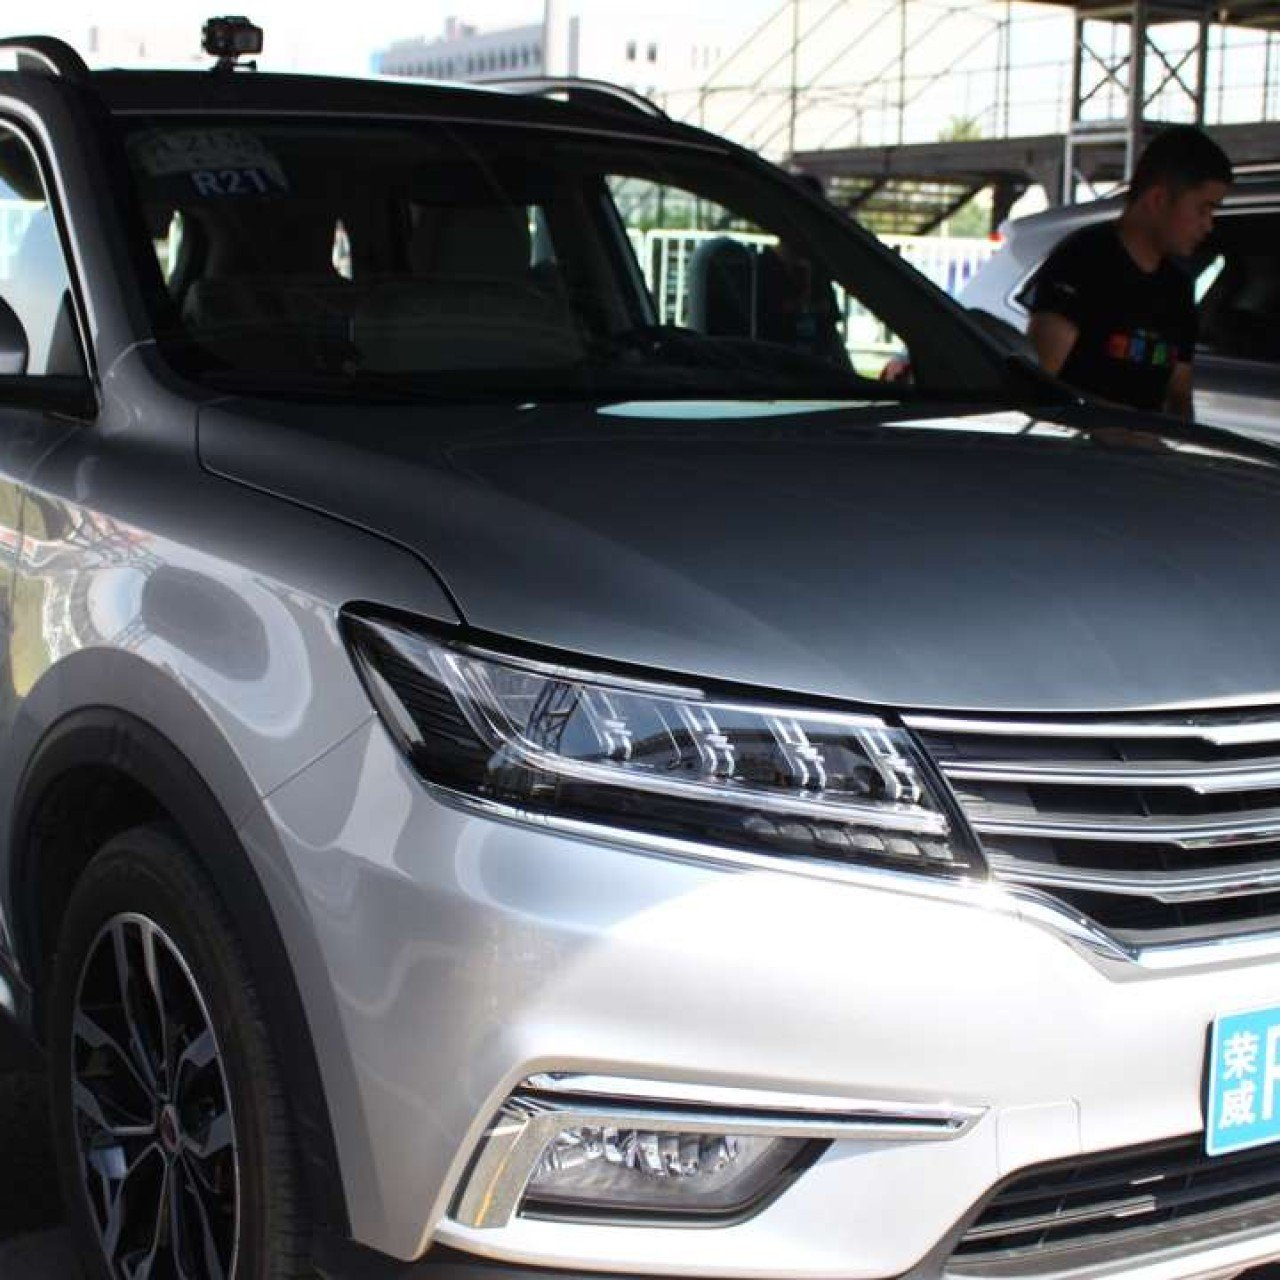 SAIC, Alibaba launch internet-connected car aimed at Chinese